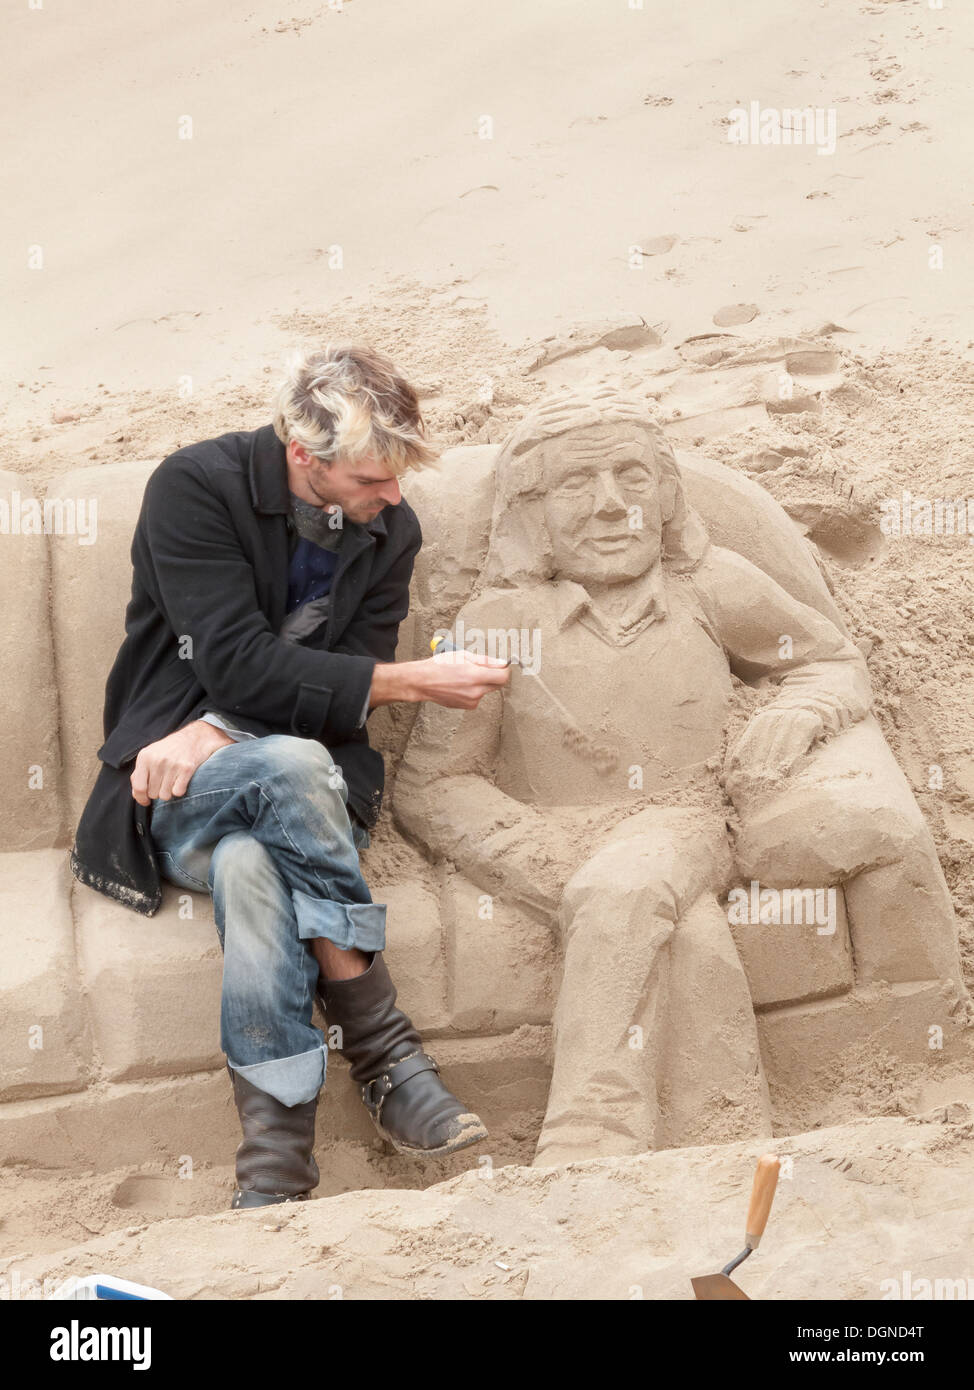 Sculptor concentrating on creating sand sculpture of a man reclining on a sofa, on River Thames South Bank, London, UK for tips - Stock Image